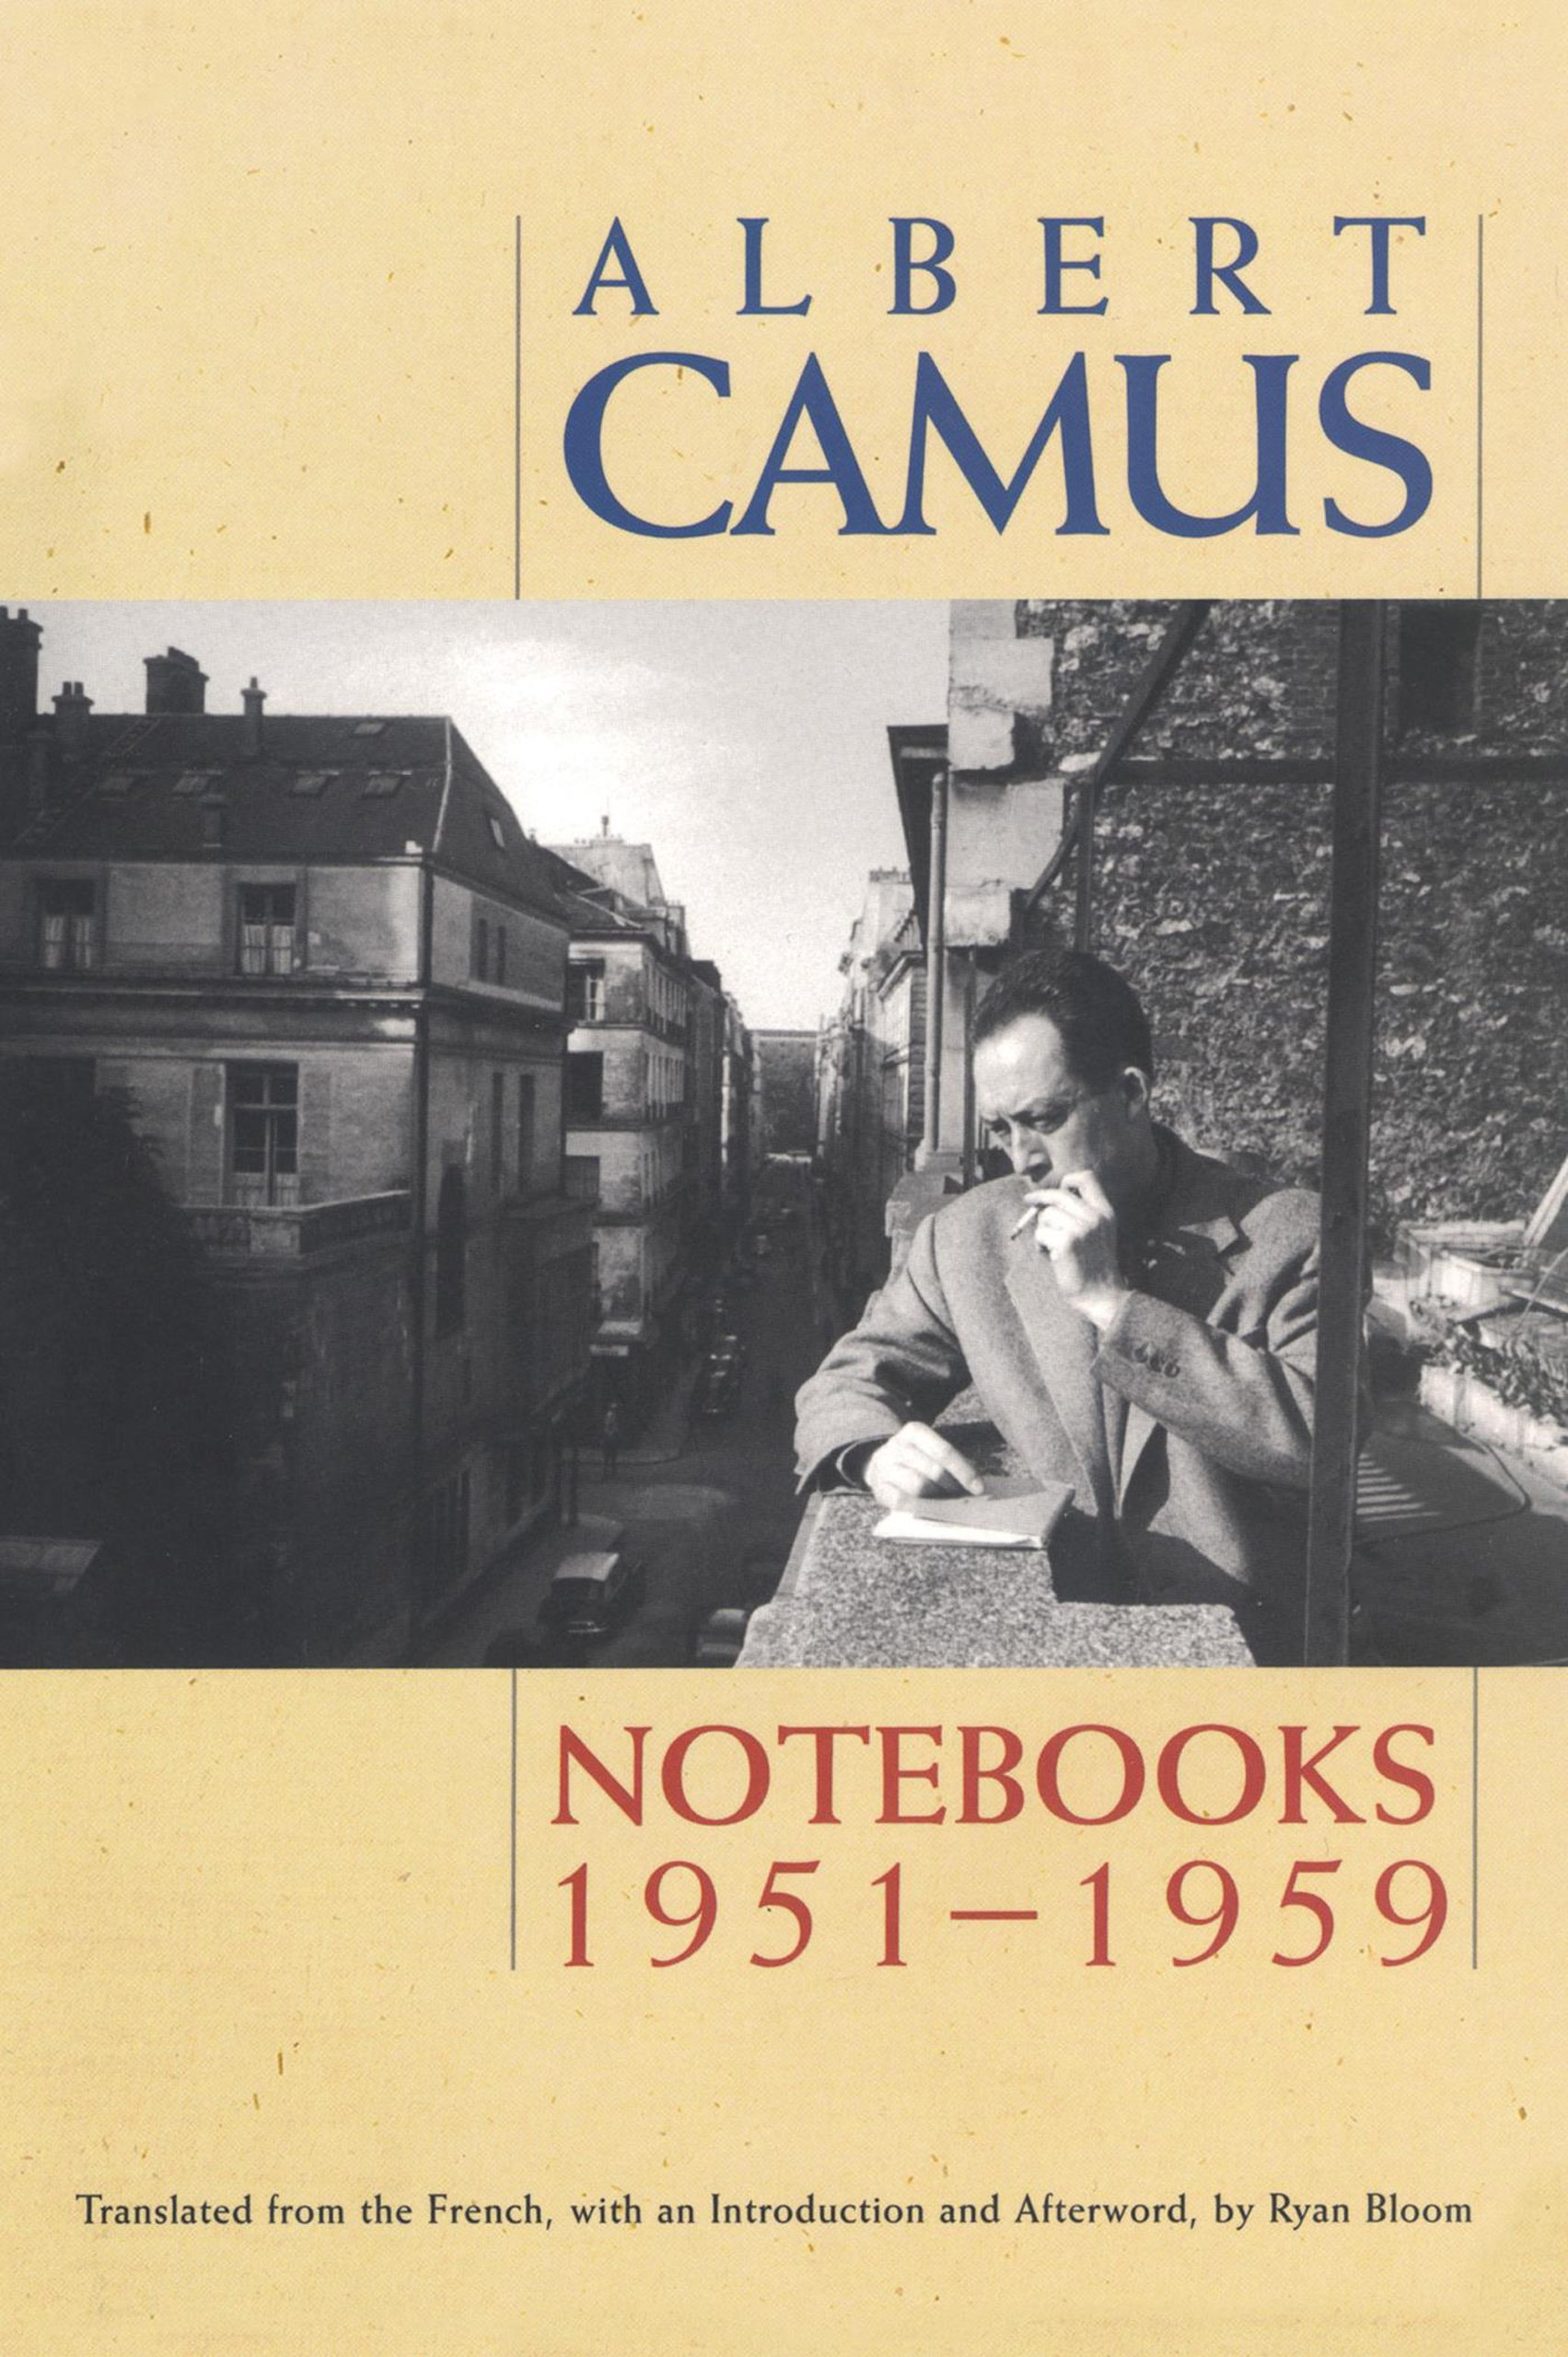 Notebooks 1951-1959